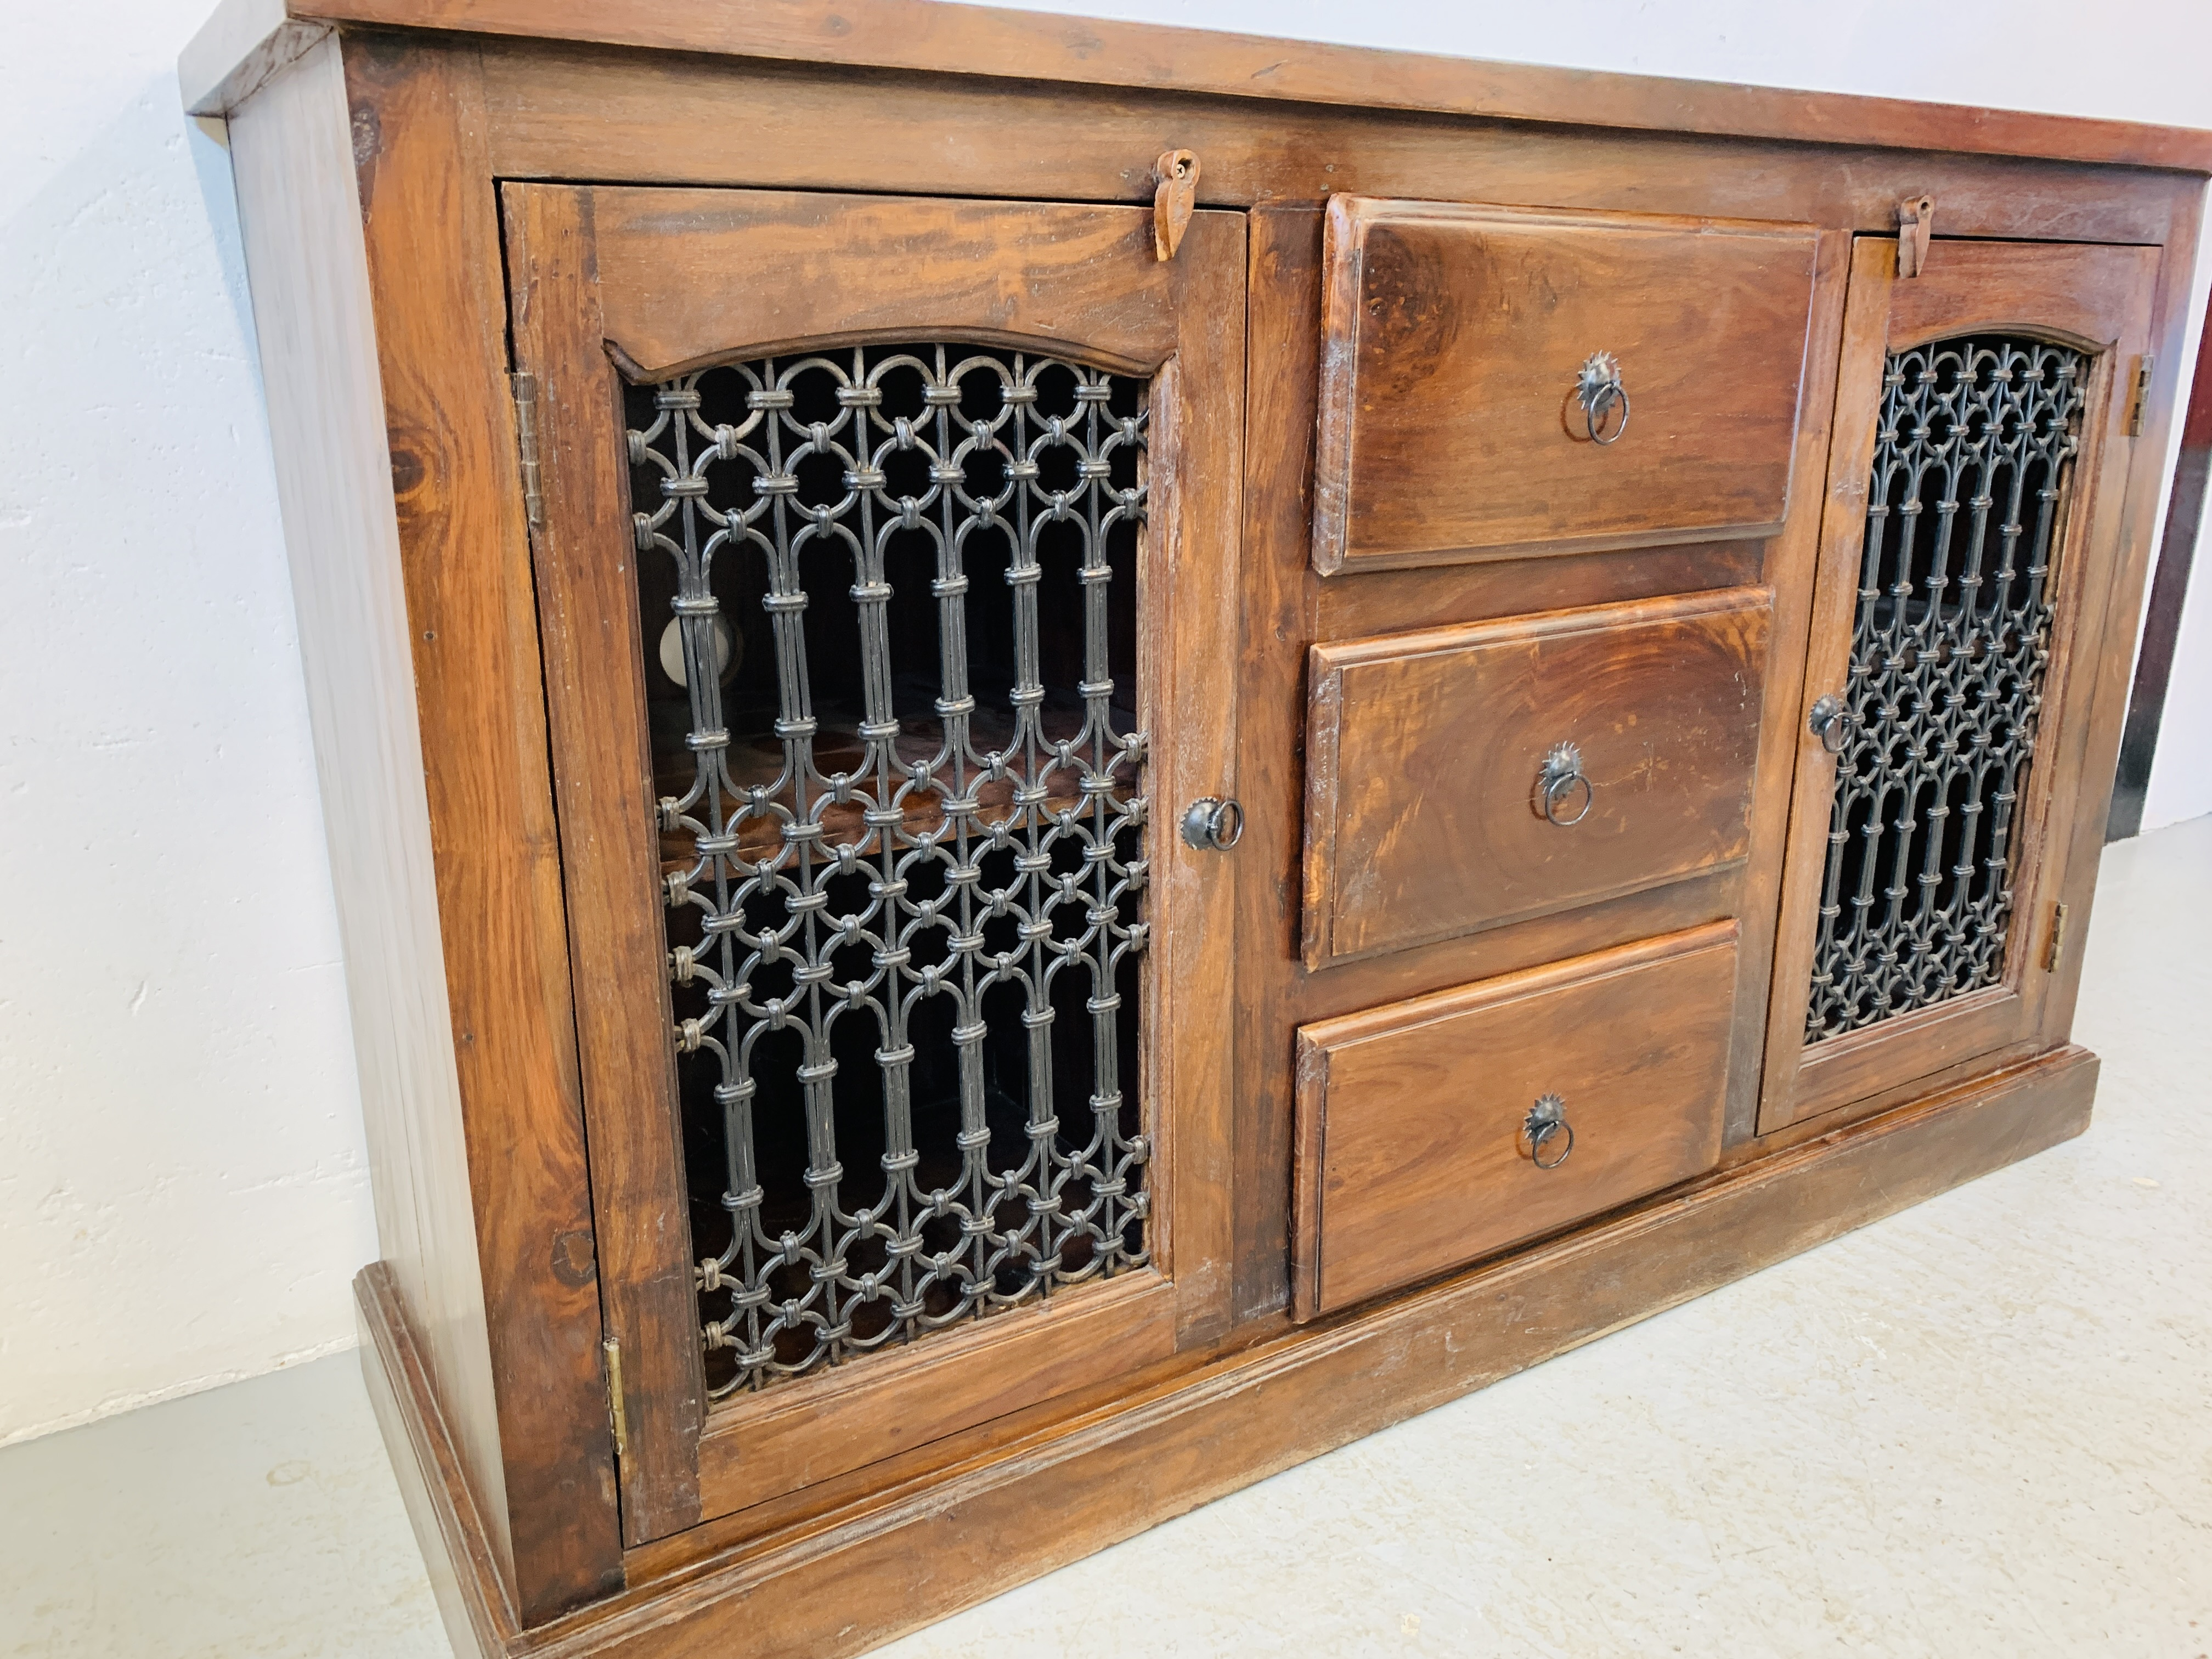 A RUSTIC HARDWOOD COUNTRY & EASTERN STYLE DRESSER BASE, - Image 6 of 9